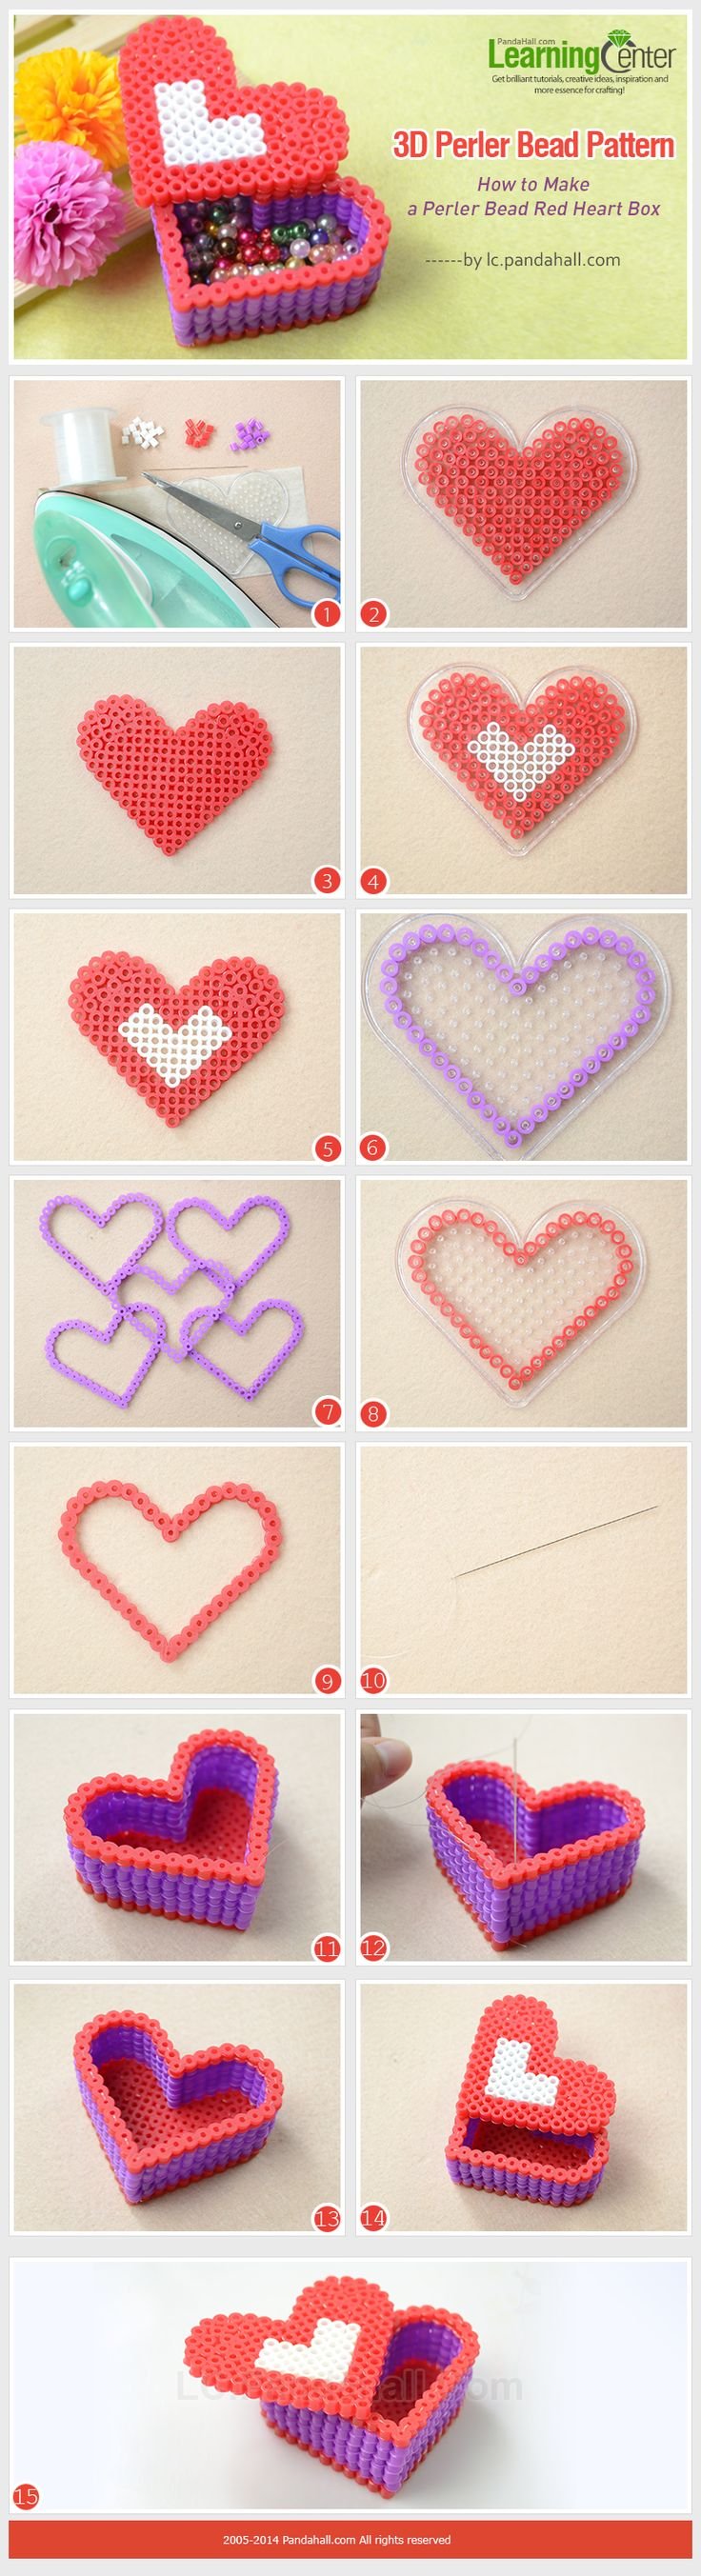 DIY: How to Make a 3D Perler Bead Red Heart Box